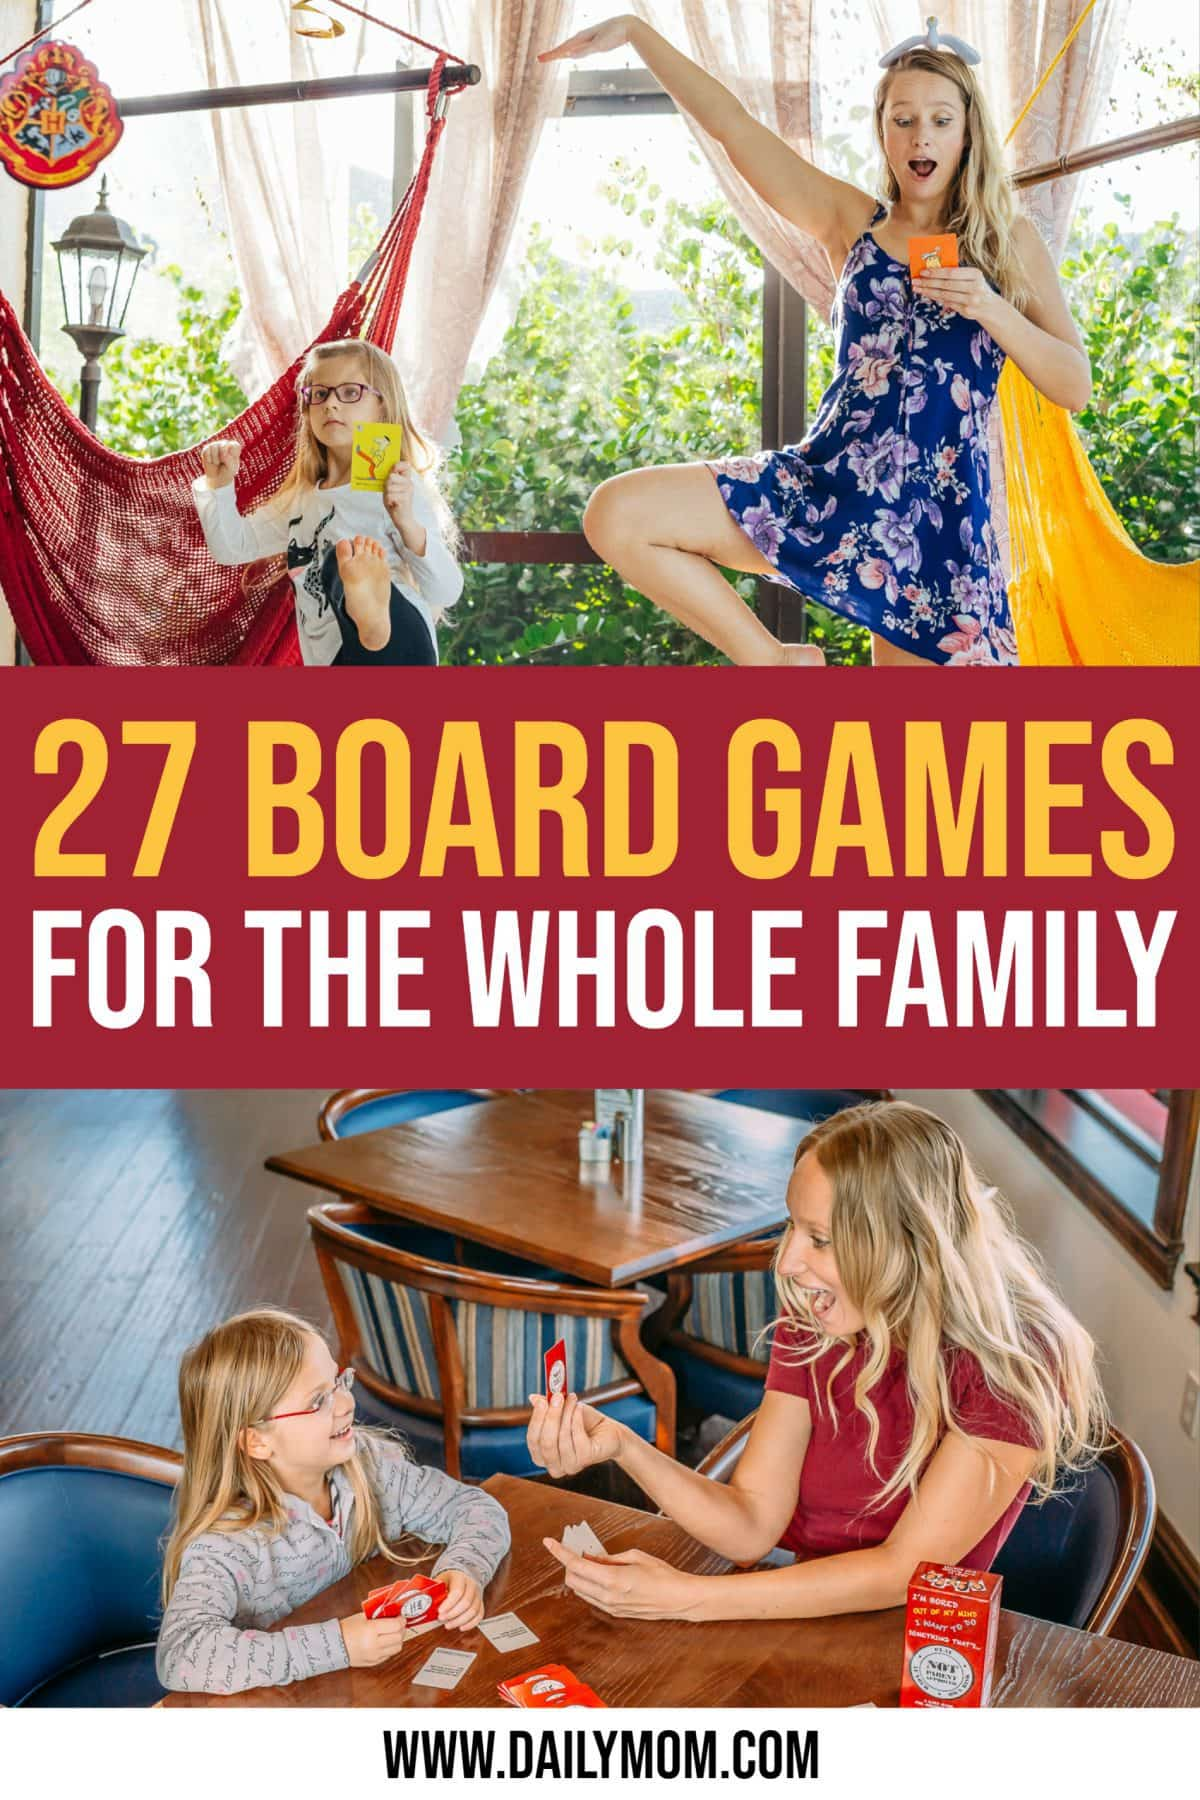 26 Board Games You Need For Your Next Family Game Night